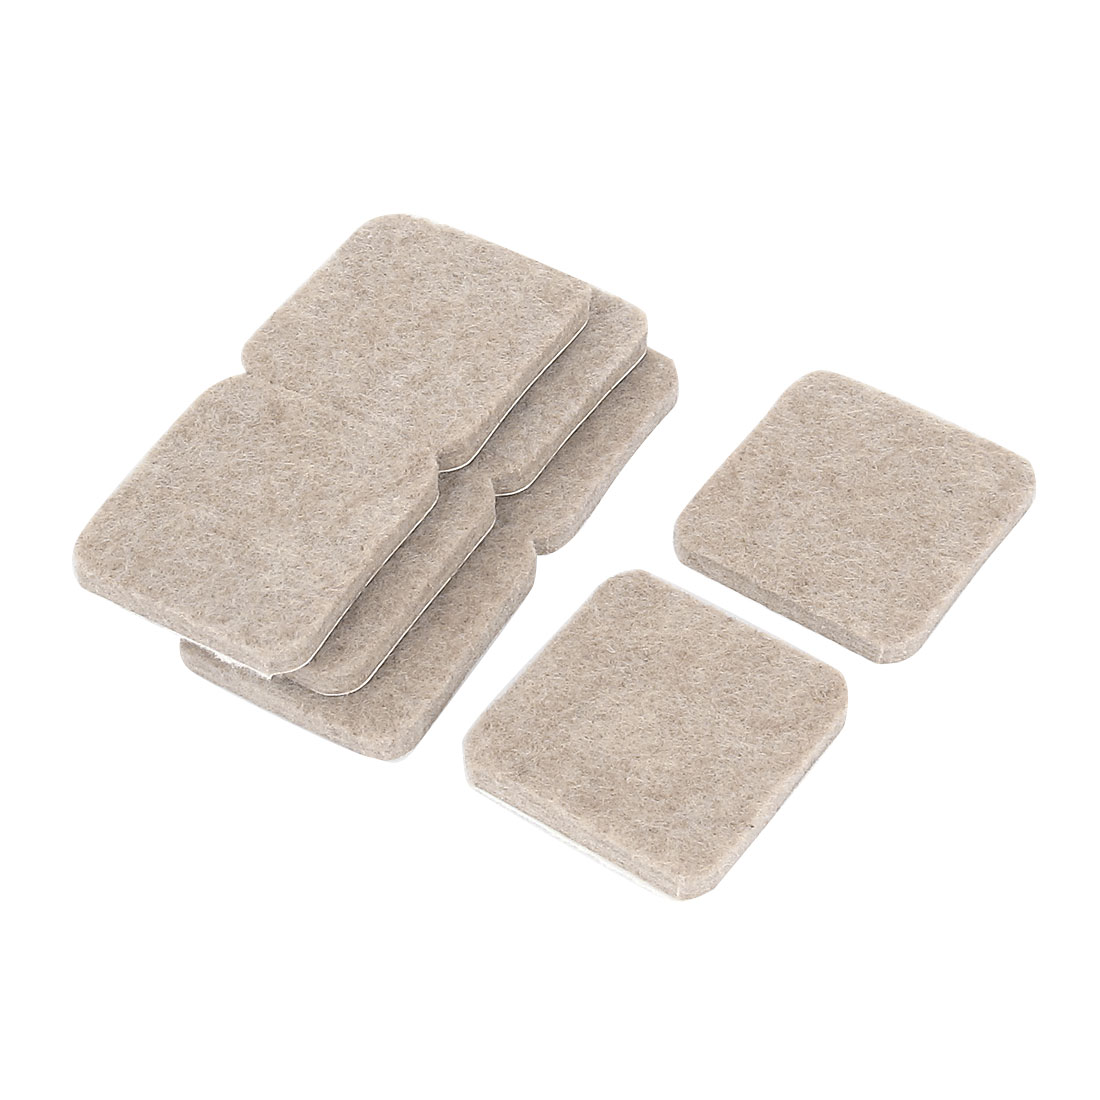 Self Stick Felt Protector Pads Chair Glides Floor Guard Khaki 8pcs